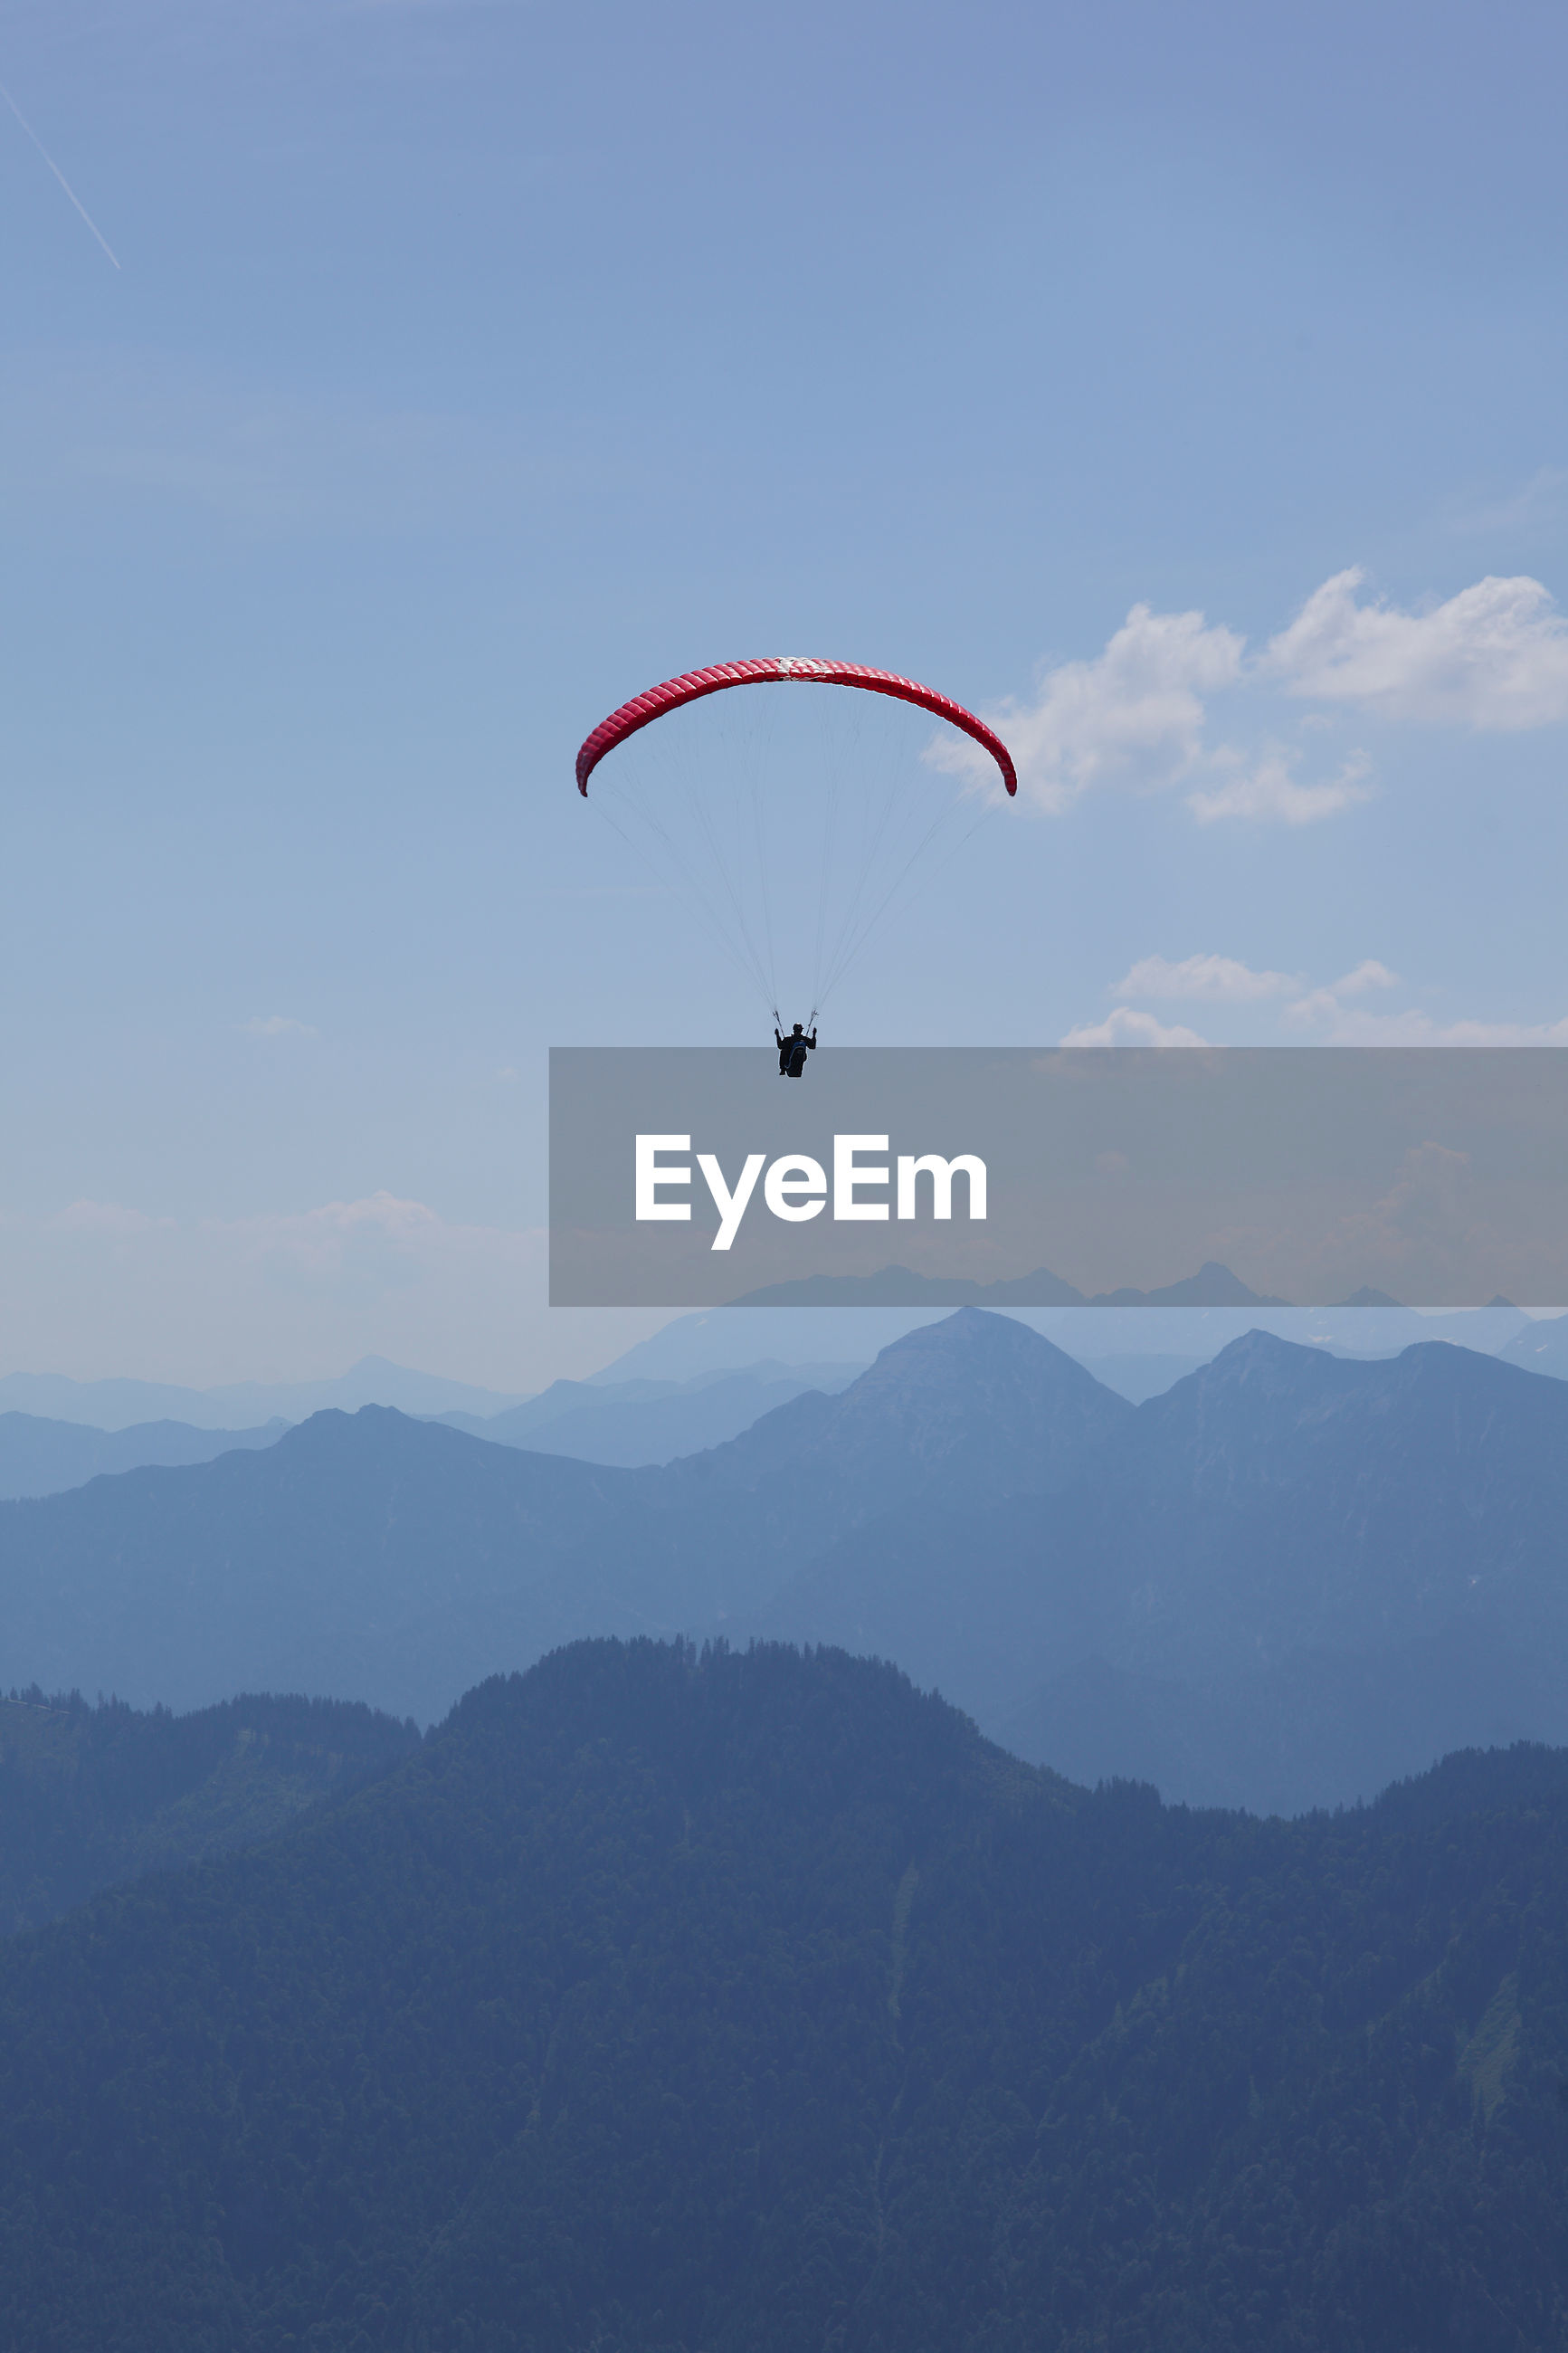 PERSON PARAGLIDING AGAINST MOUNTAIN RANGE